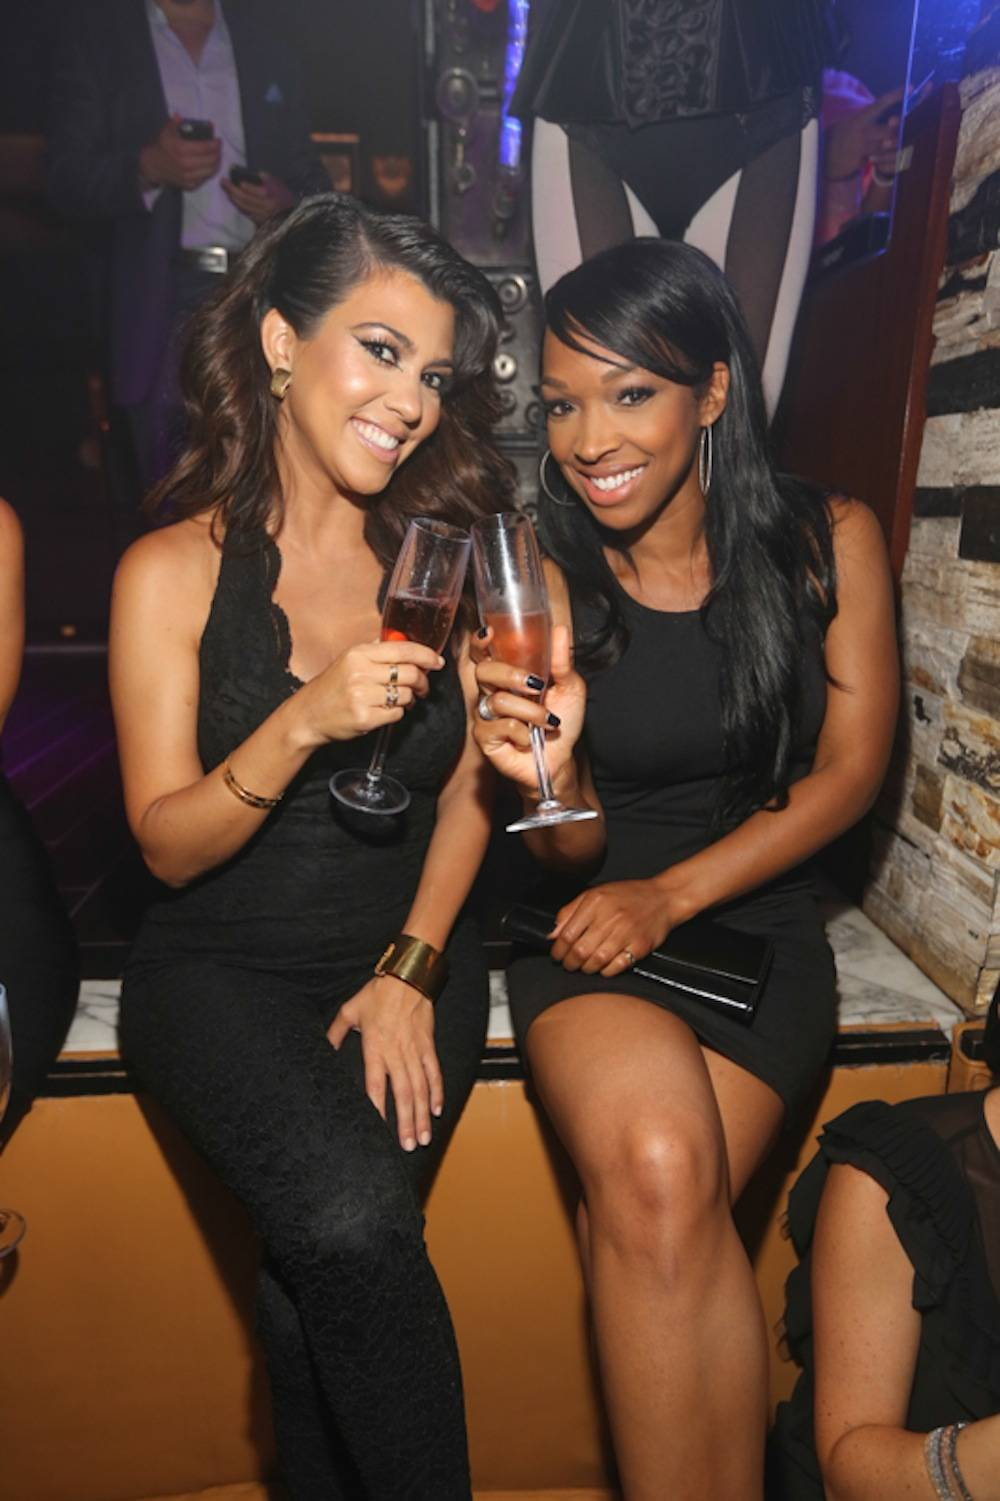 Kourtney Kardashian & Malika Haqq at Hyde Bellagio, Las Vegas, 8.31.13, photo credit – Hyde Bellagio